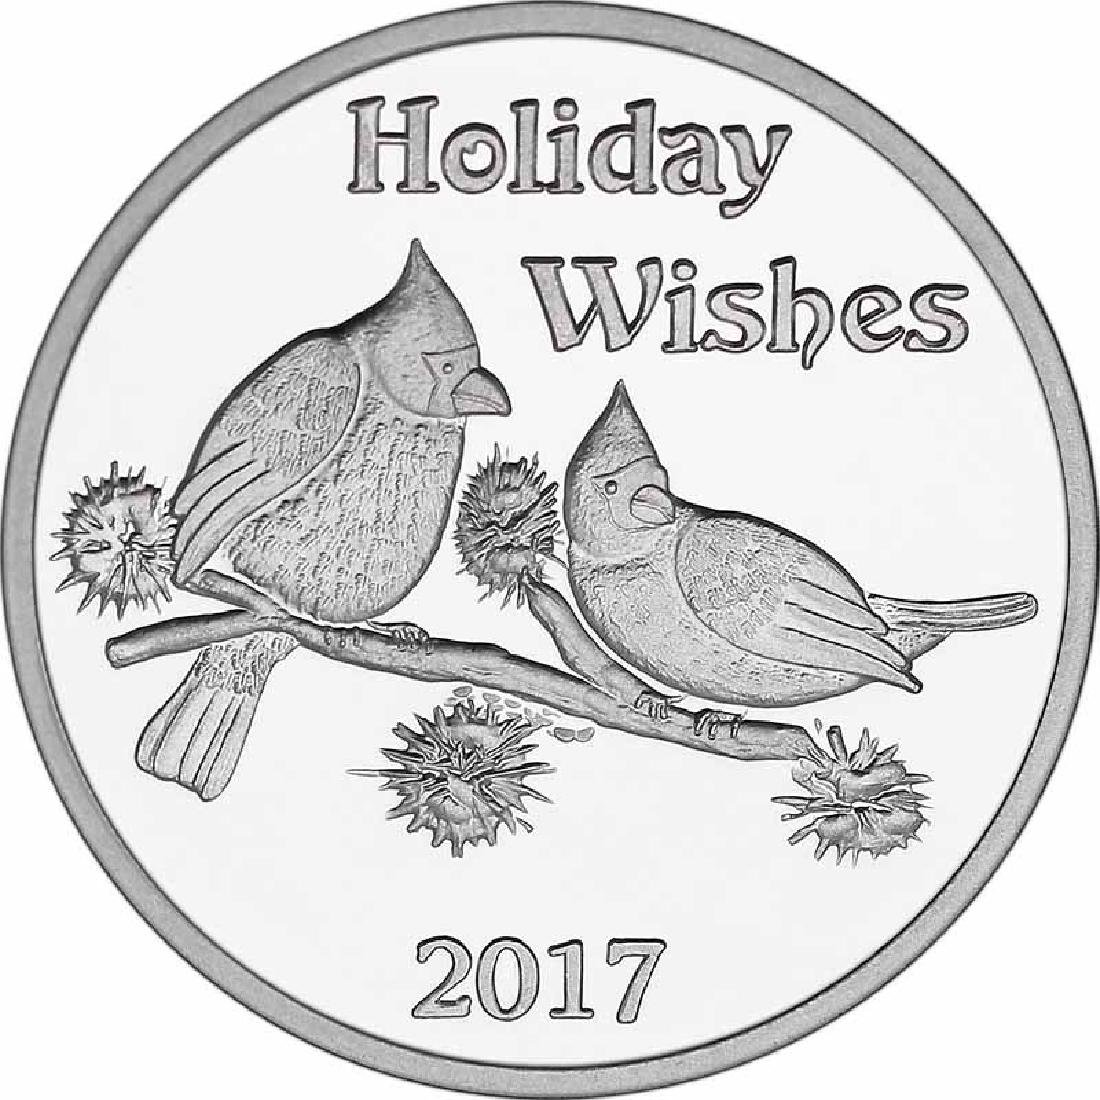 Christmas 2017 Silver Round X-6 Holiday Wishes